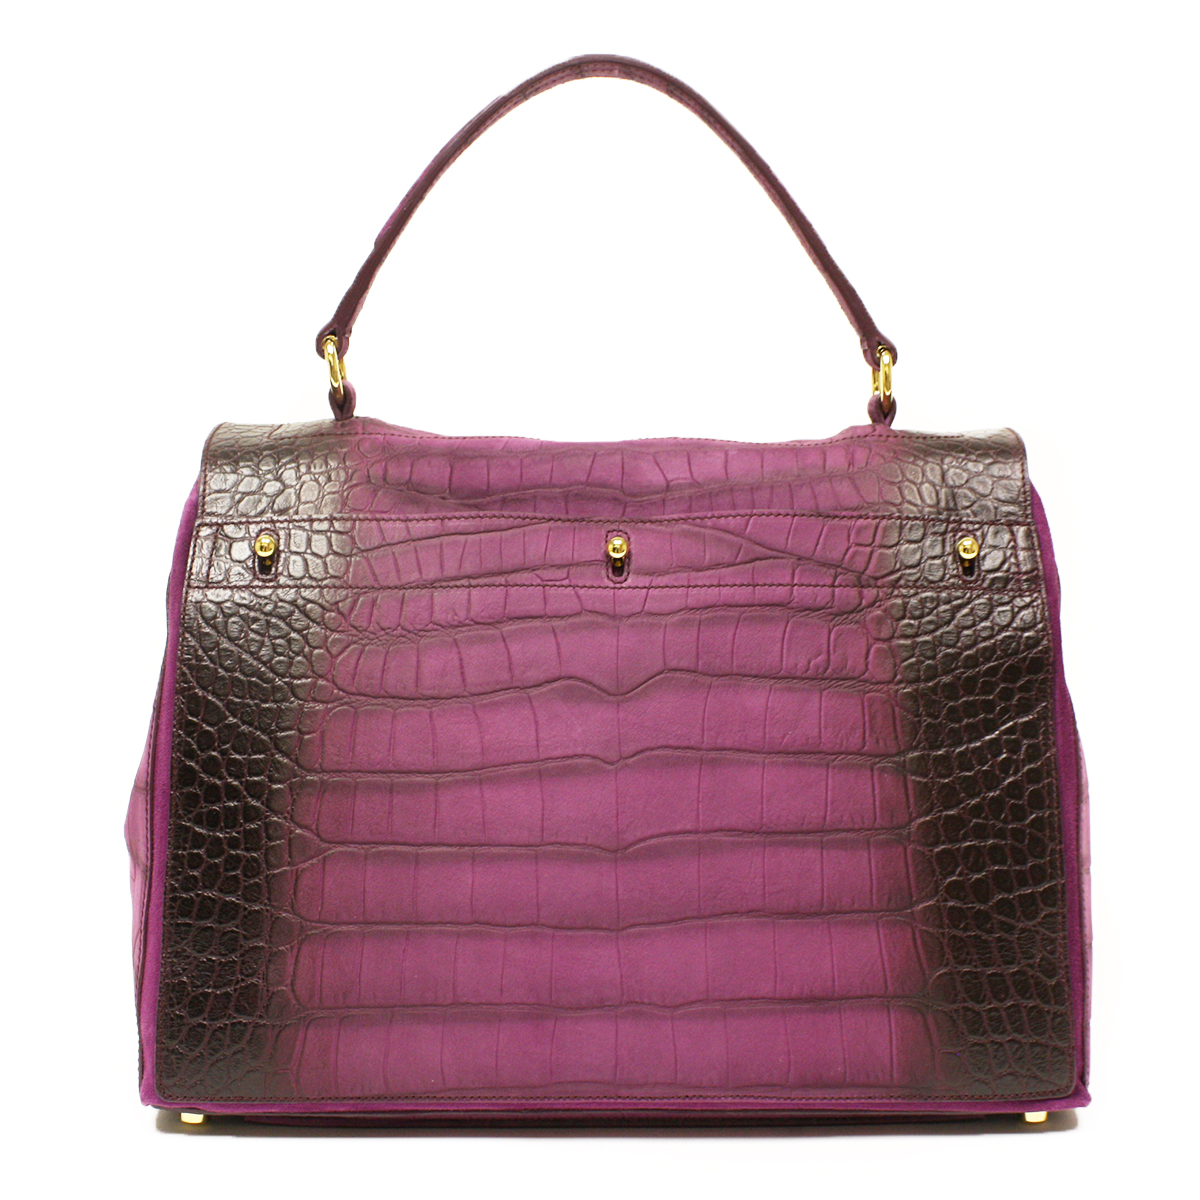 YSL Muse 2 Yves Saint Laurent Muse Two Large Purple Croc Embossed Satchel Bag 257445